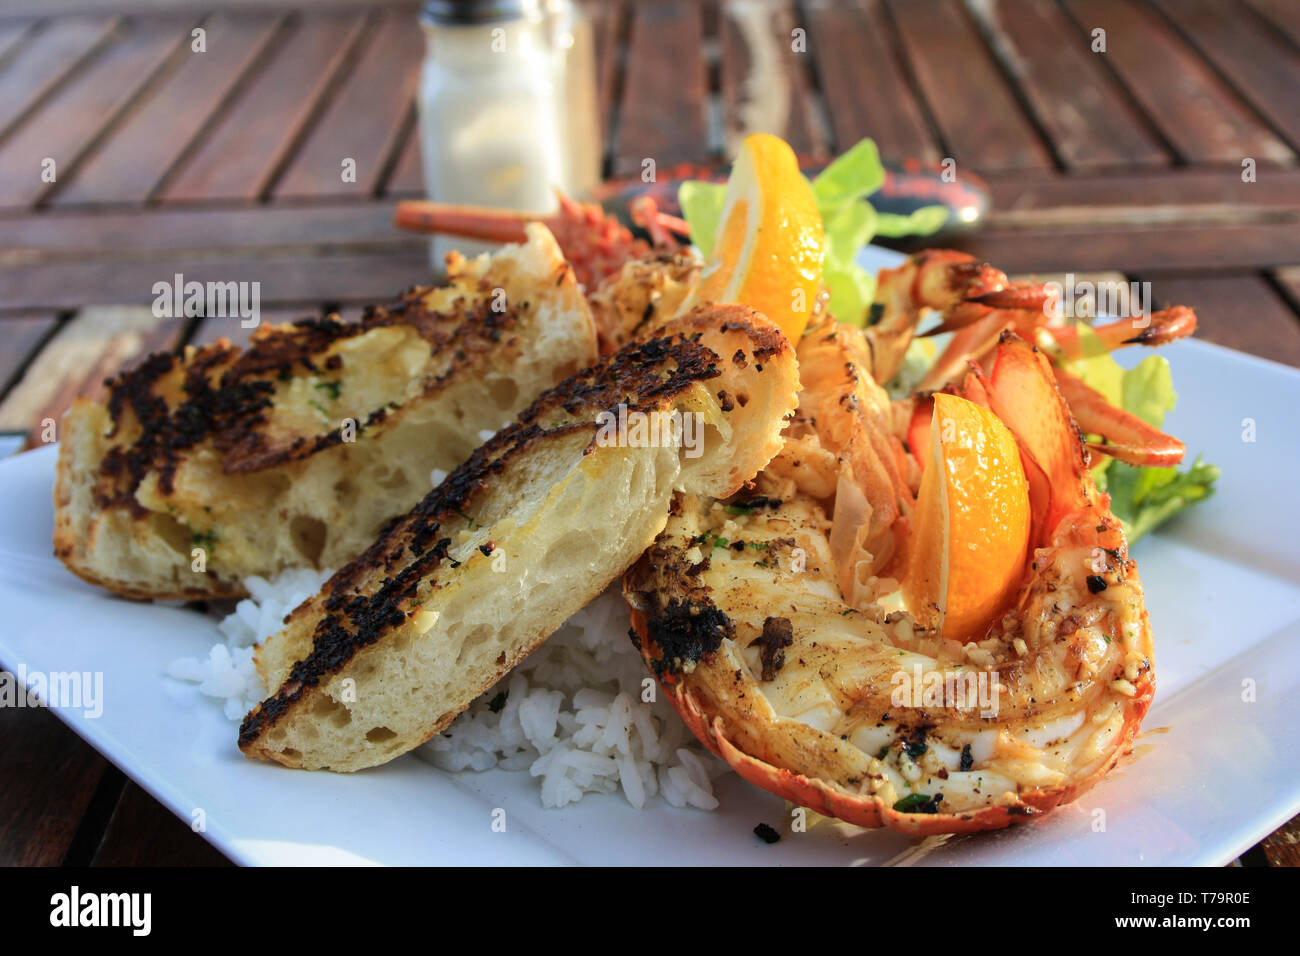 Close-up of a grilled lobster on a plate with rice, salat, orange and some french bread, North Island, New Zealand - Stock Image